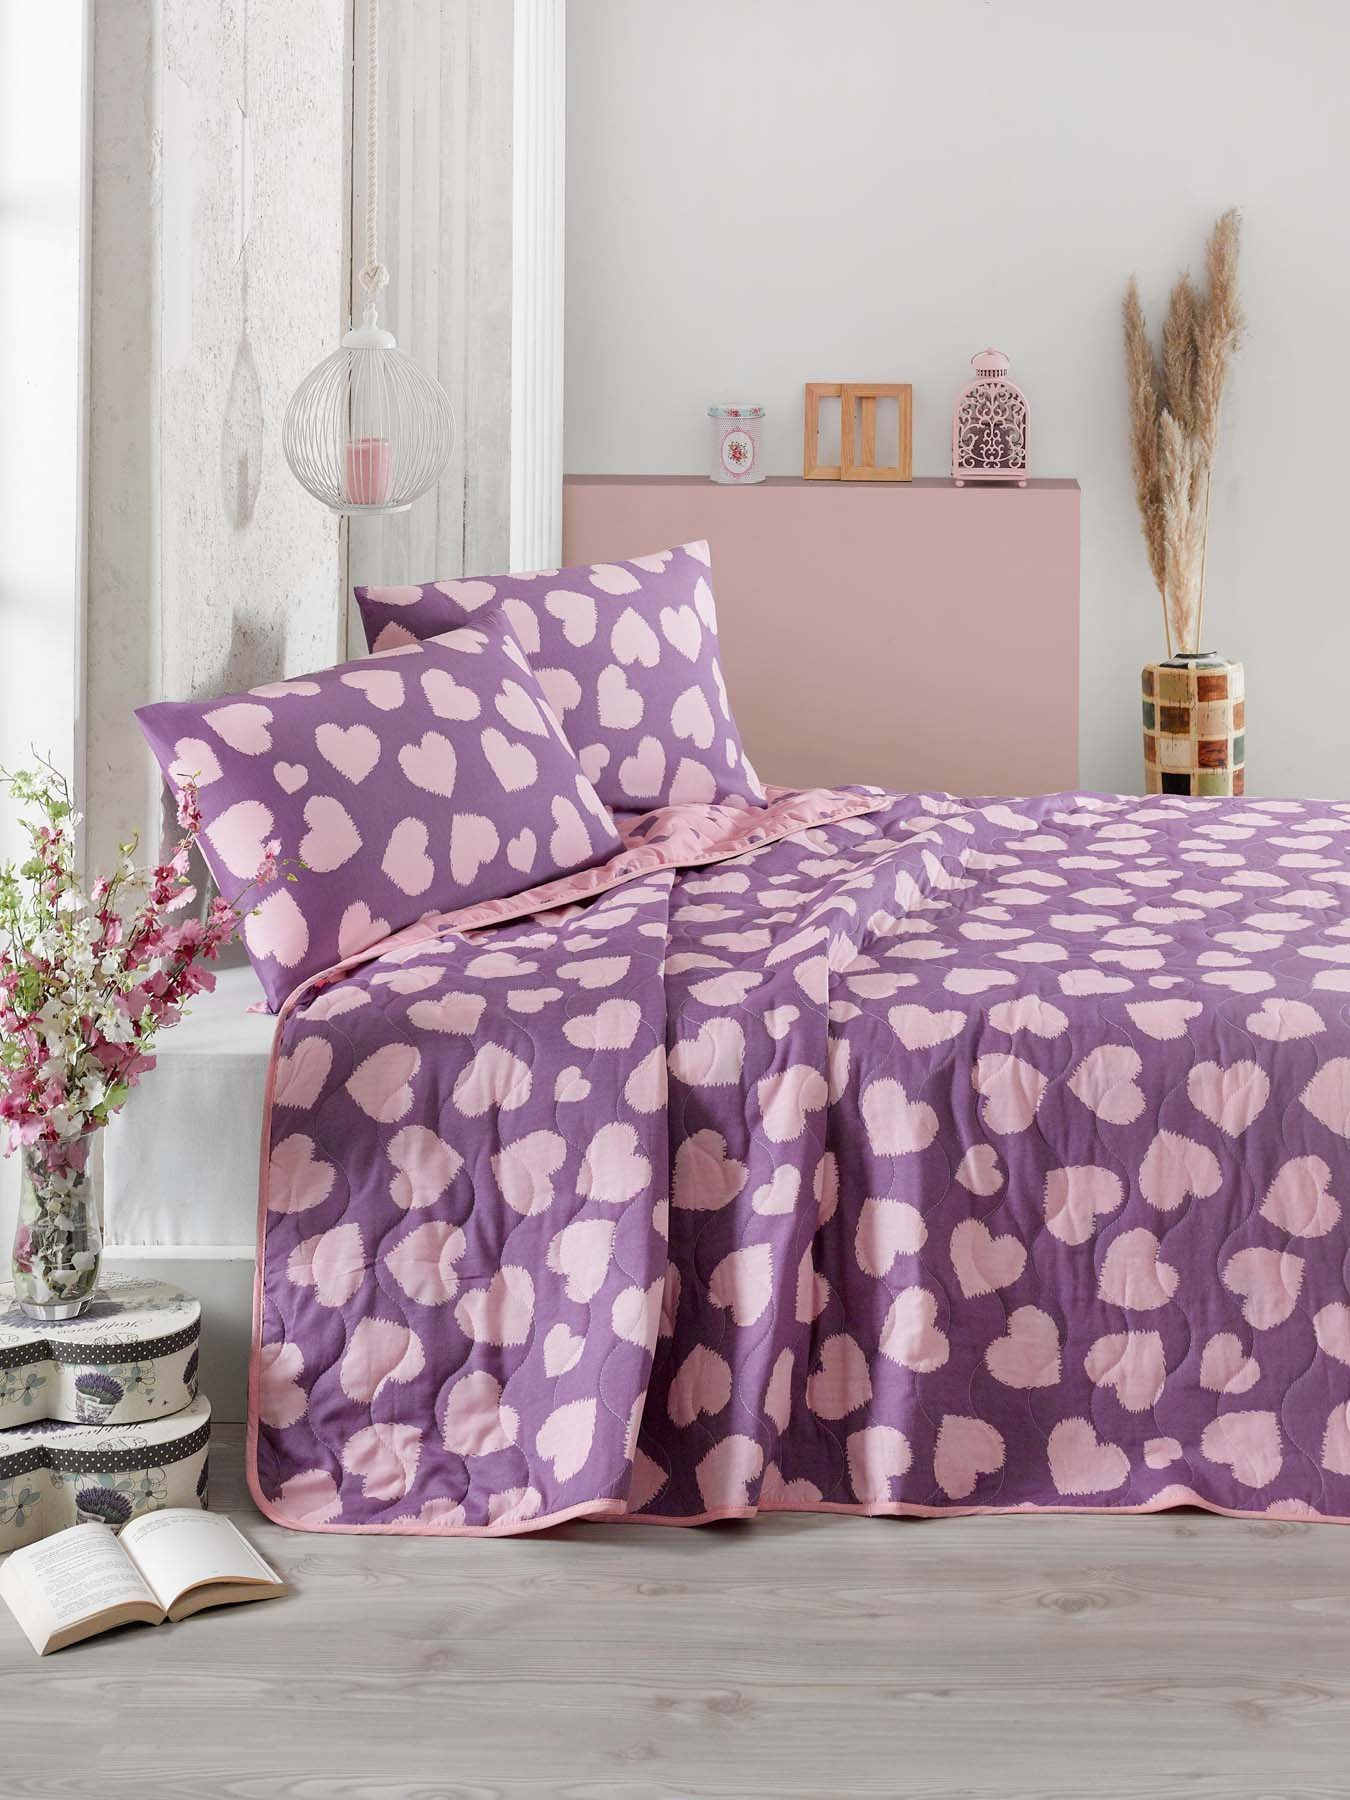 2 Pcs Twin and Single Bedroom Bedding Soft Colored [65% Cotton 35% Polyester (Cover)] / 100% FIBER (Filling) / Single Quilted Bedspread Set Soft Relaxed Comfortable Pattern Love Colourful Single Bed